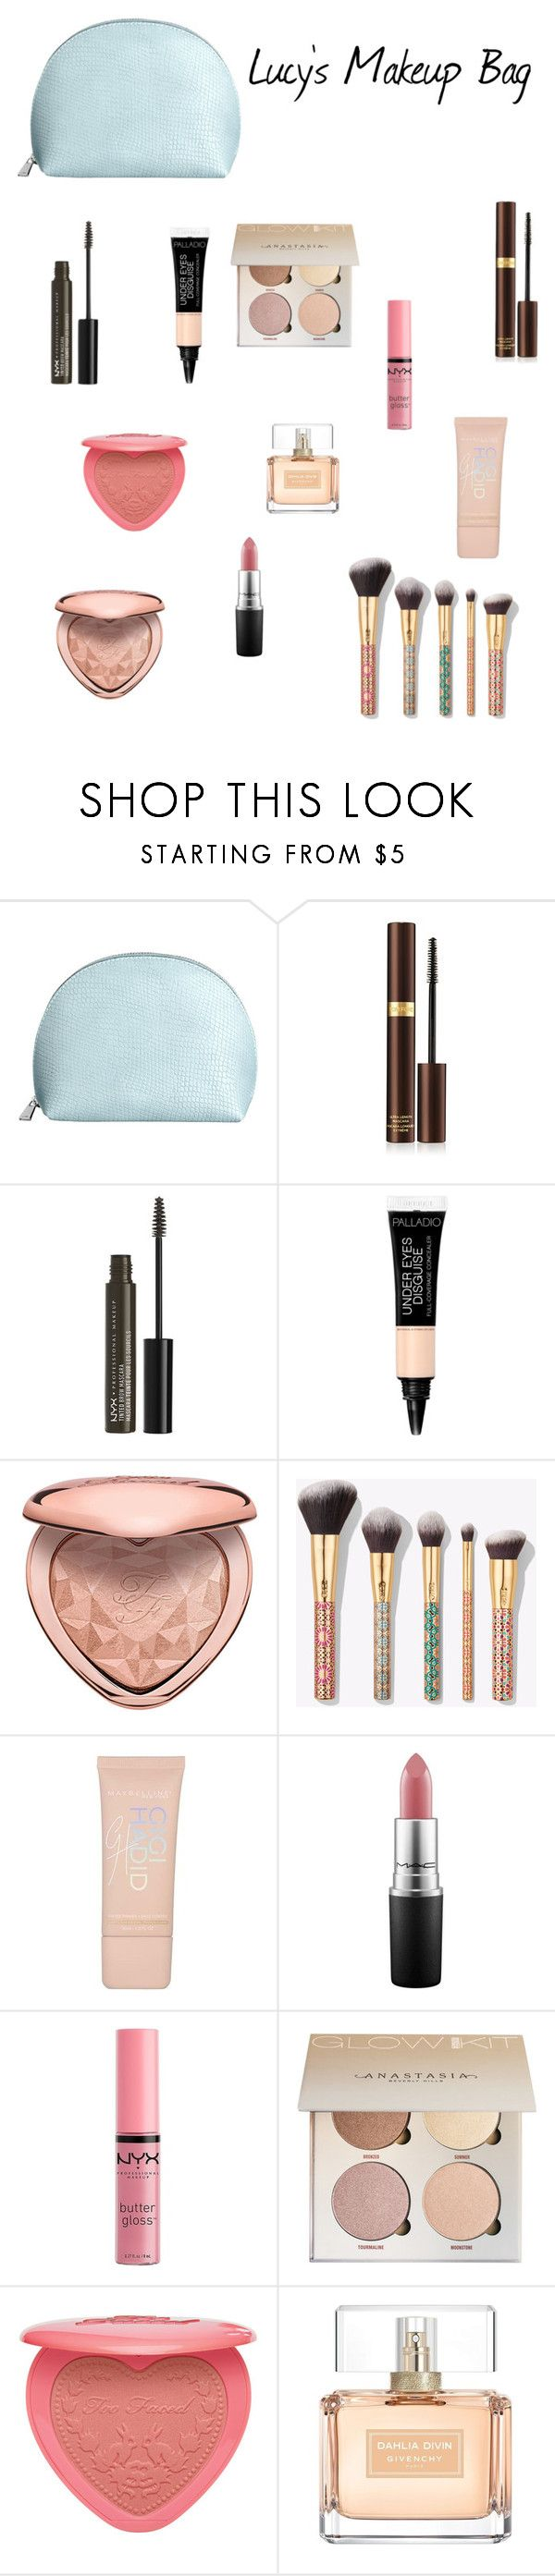 """Lucy's Makeup Bag"" by londonblossom ❤ liked on Polyvore featuring beauty, Tom Ford, NYX, Too Faced Cosmetics, tarte, Maybelline, MAC Cosmetics, Charlotte Russe and Givenchy"